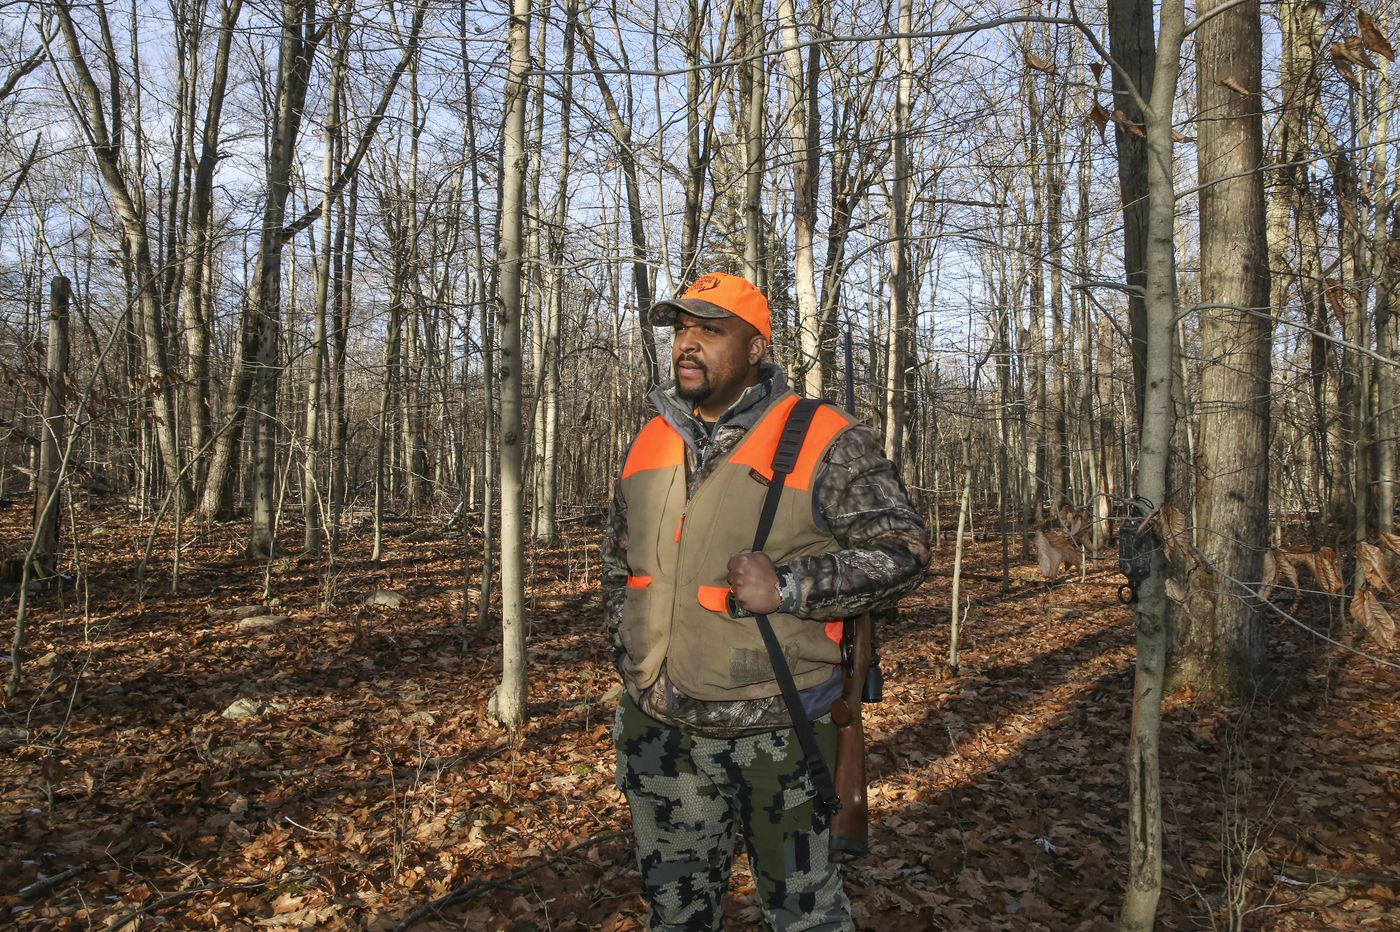 A Black-owned camp in the Poconos aims to make hunting more diverse